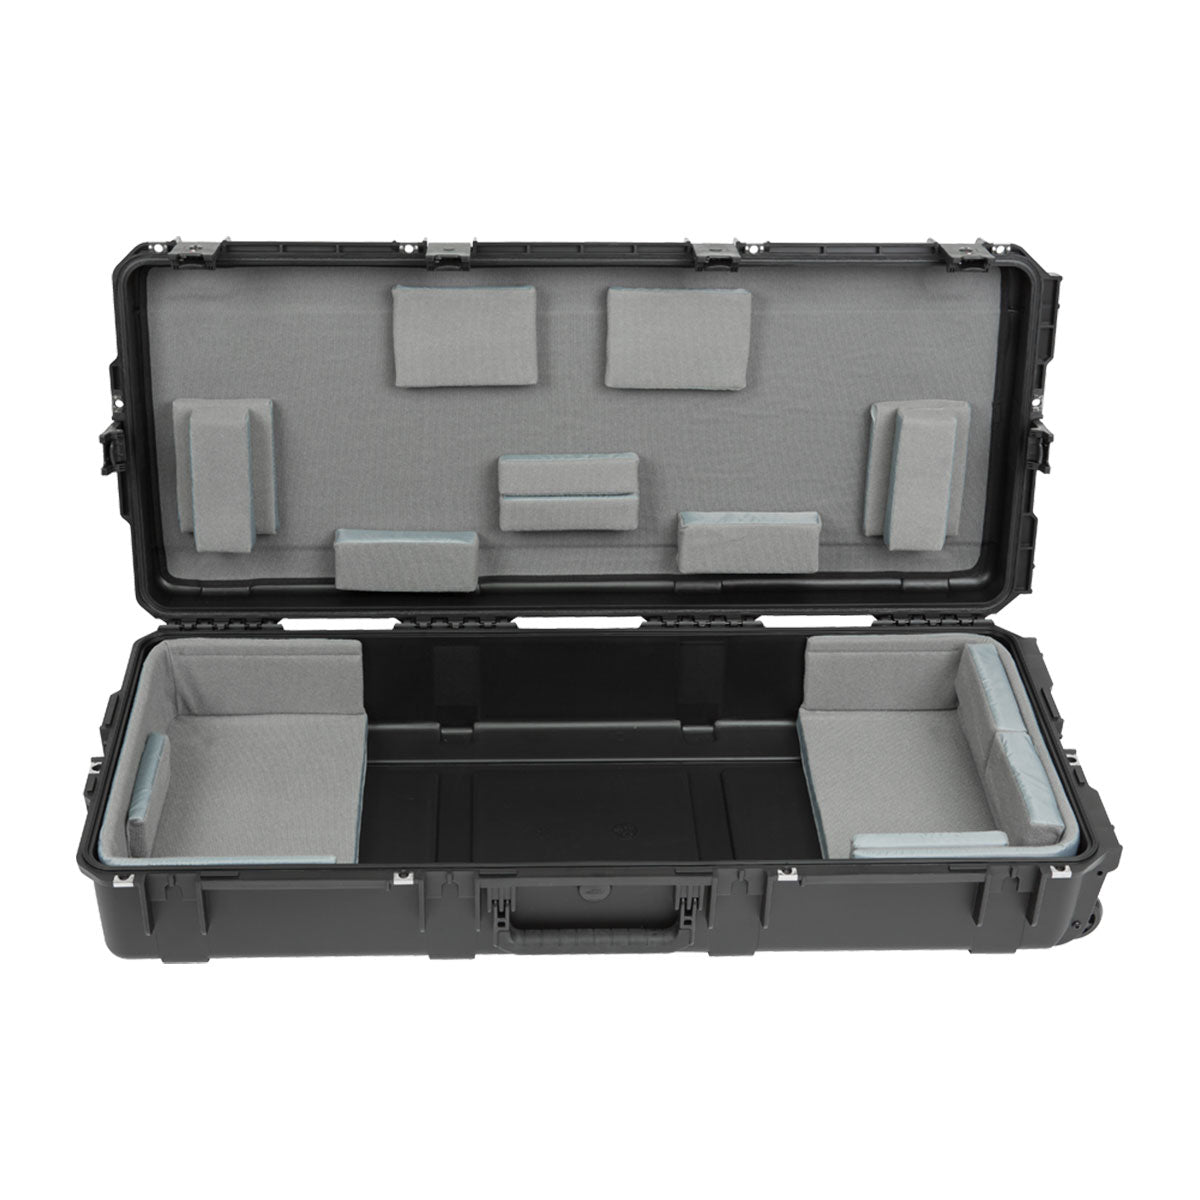 "SKB iSeries 61-Note Keyboard Case - w/Think Tank Interior: 39.5"" x 16"" x 5.625"""